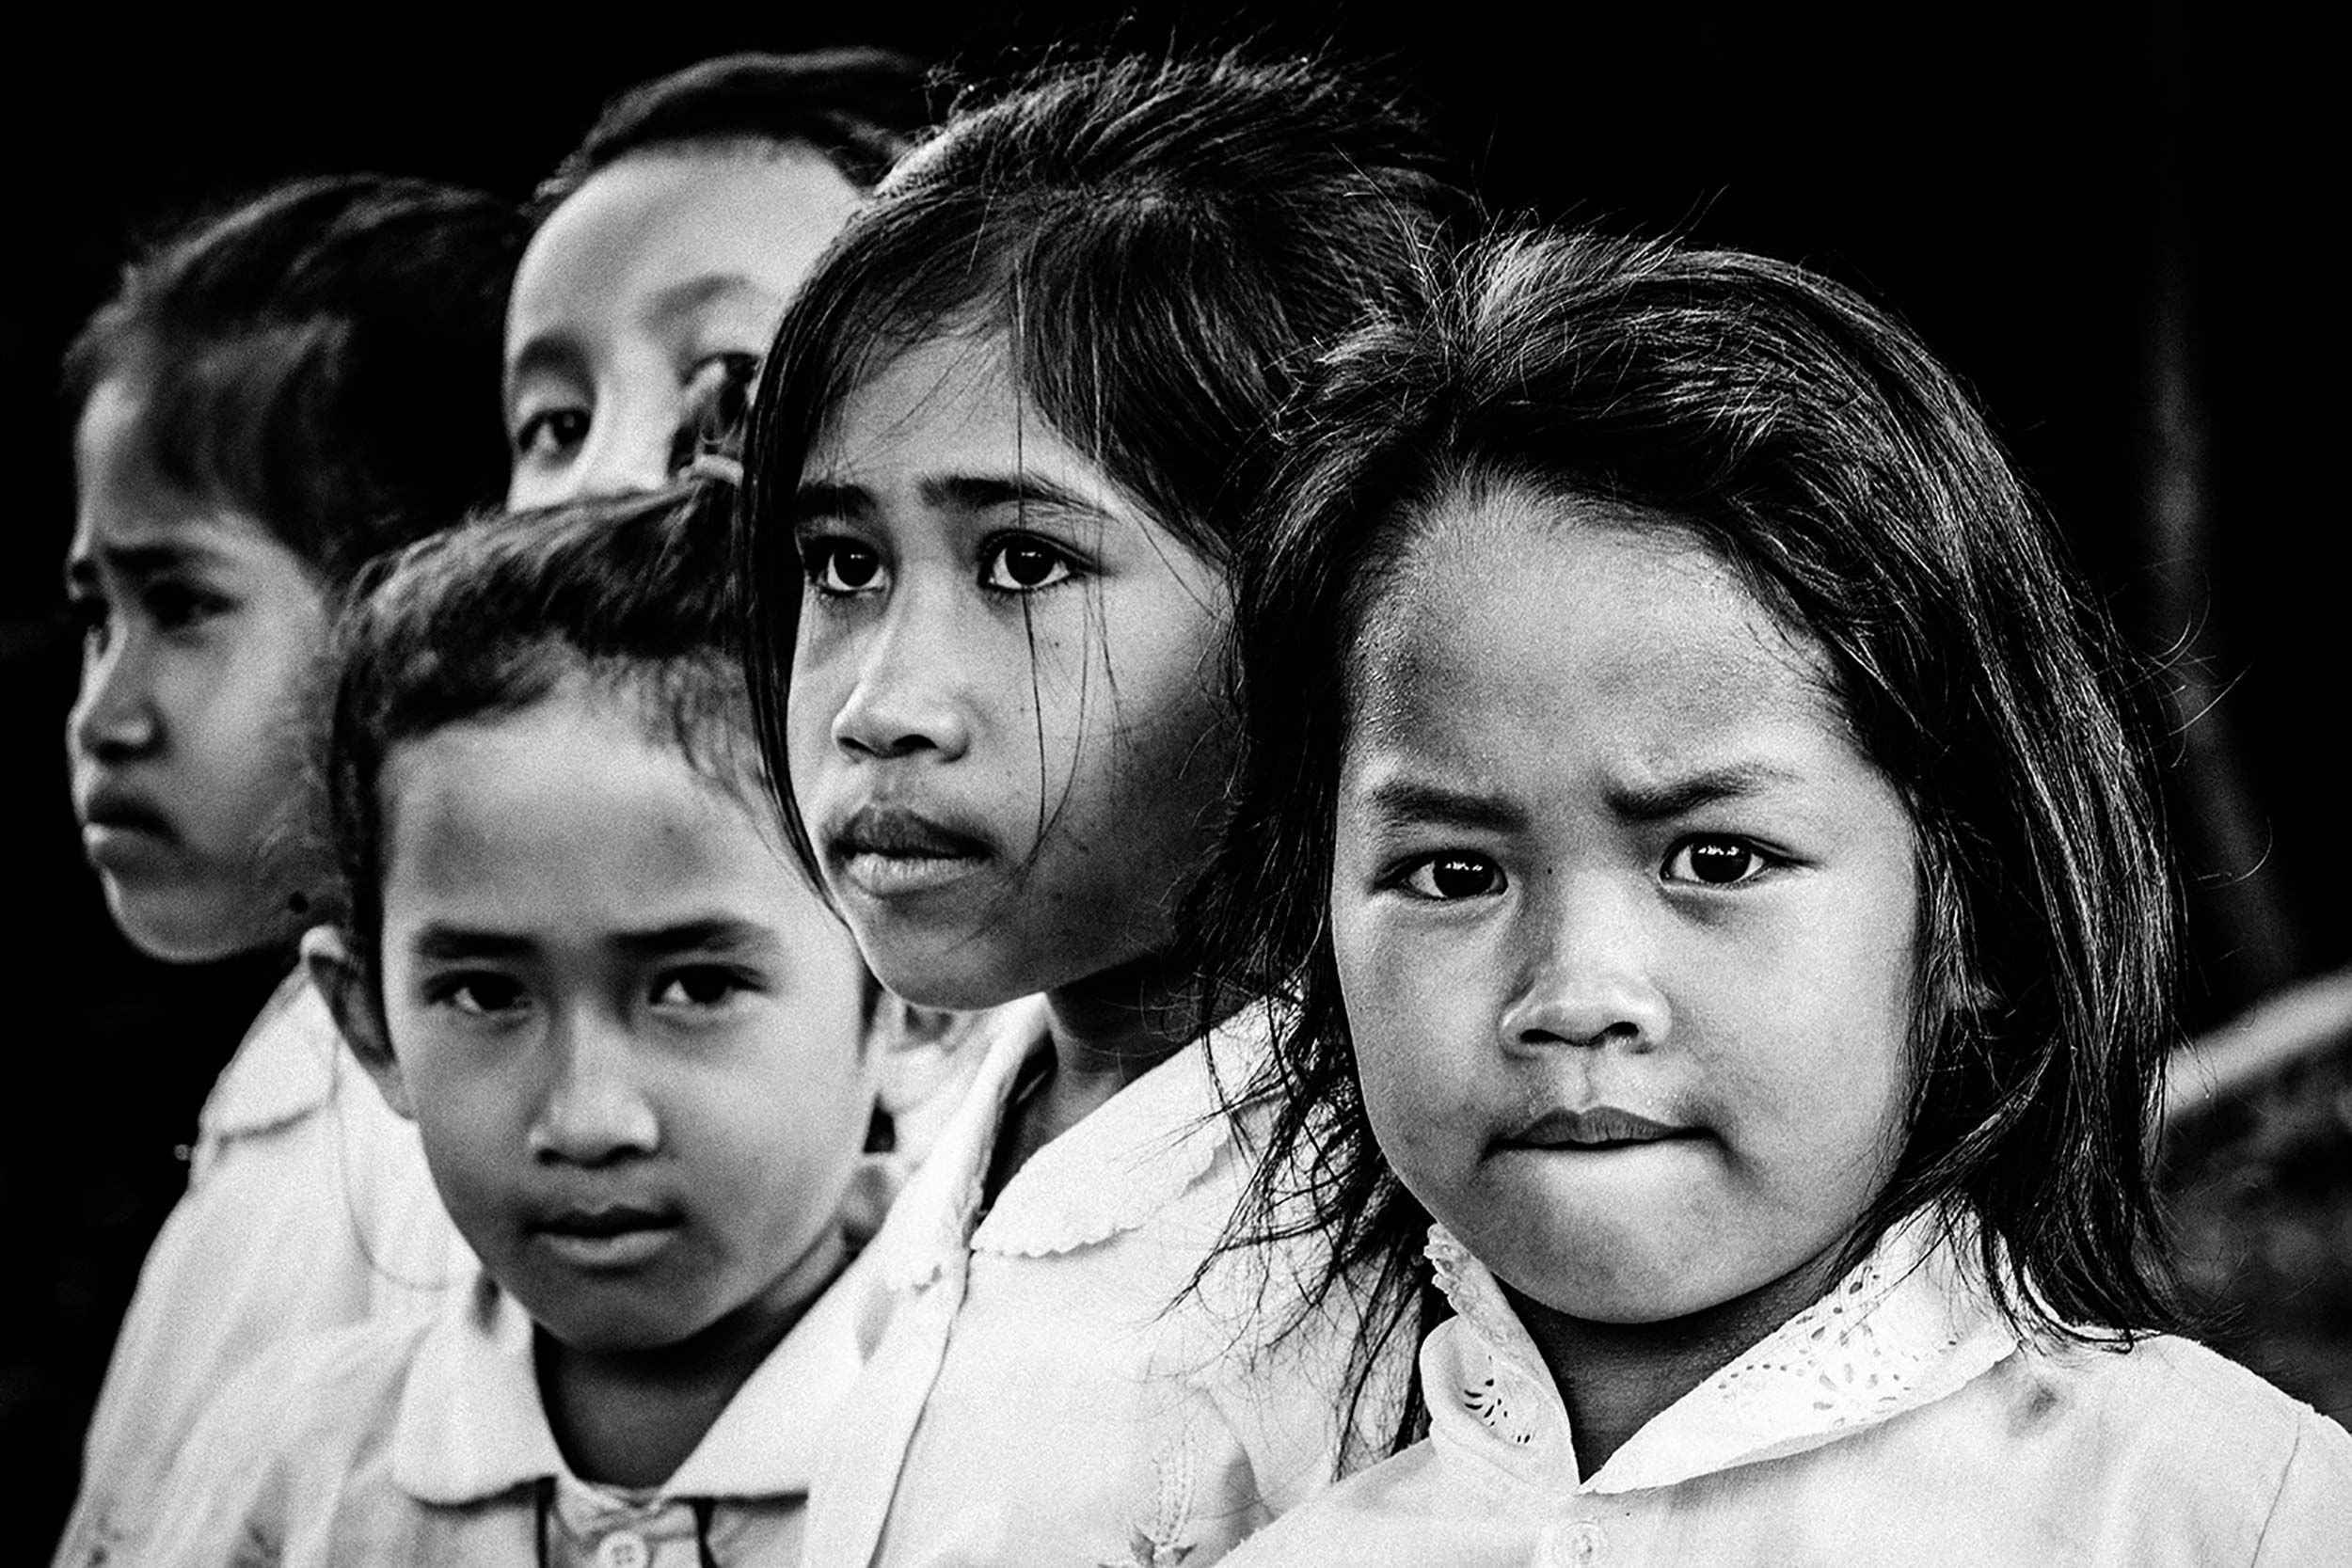 School girls, Southern Laos